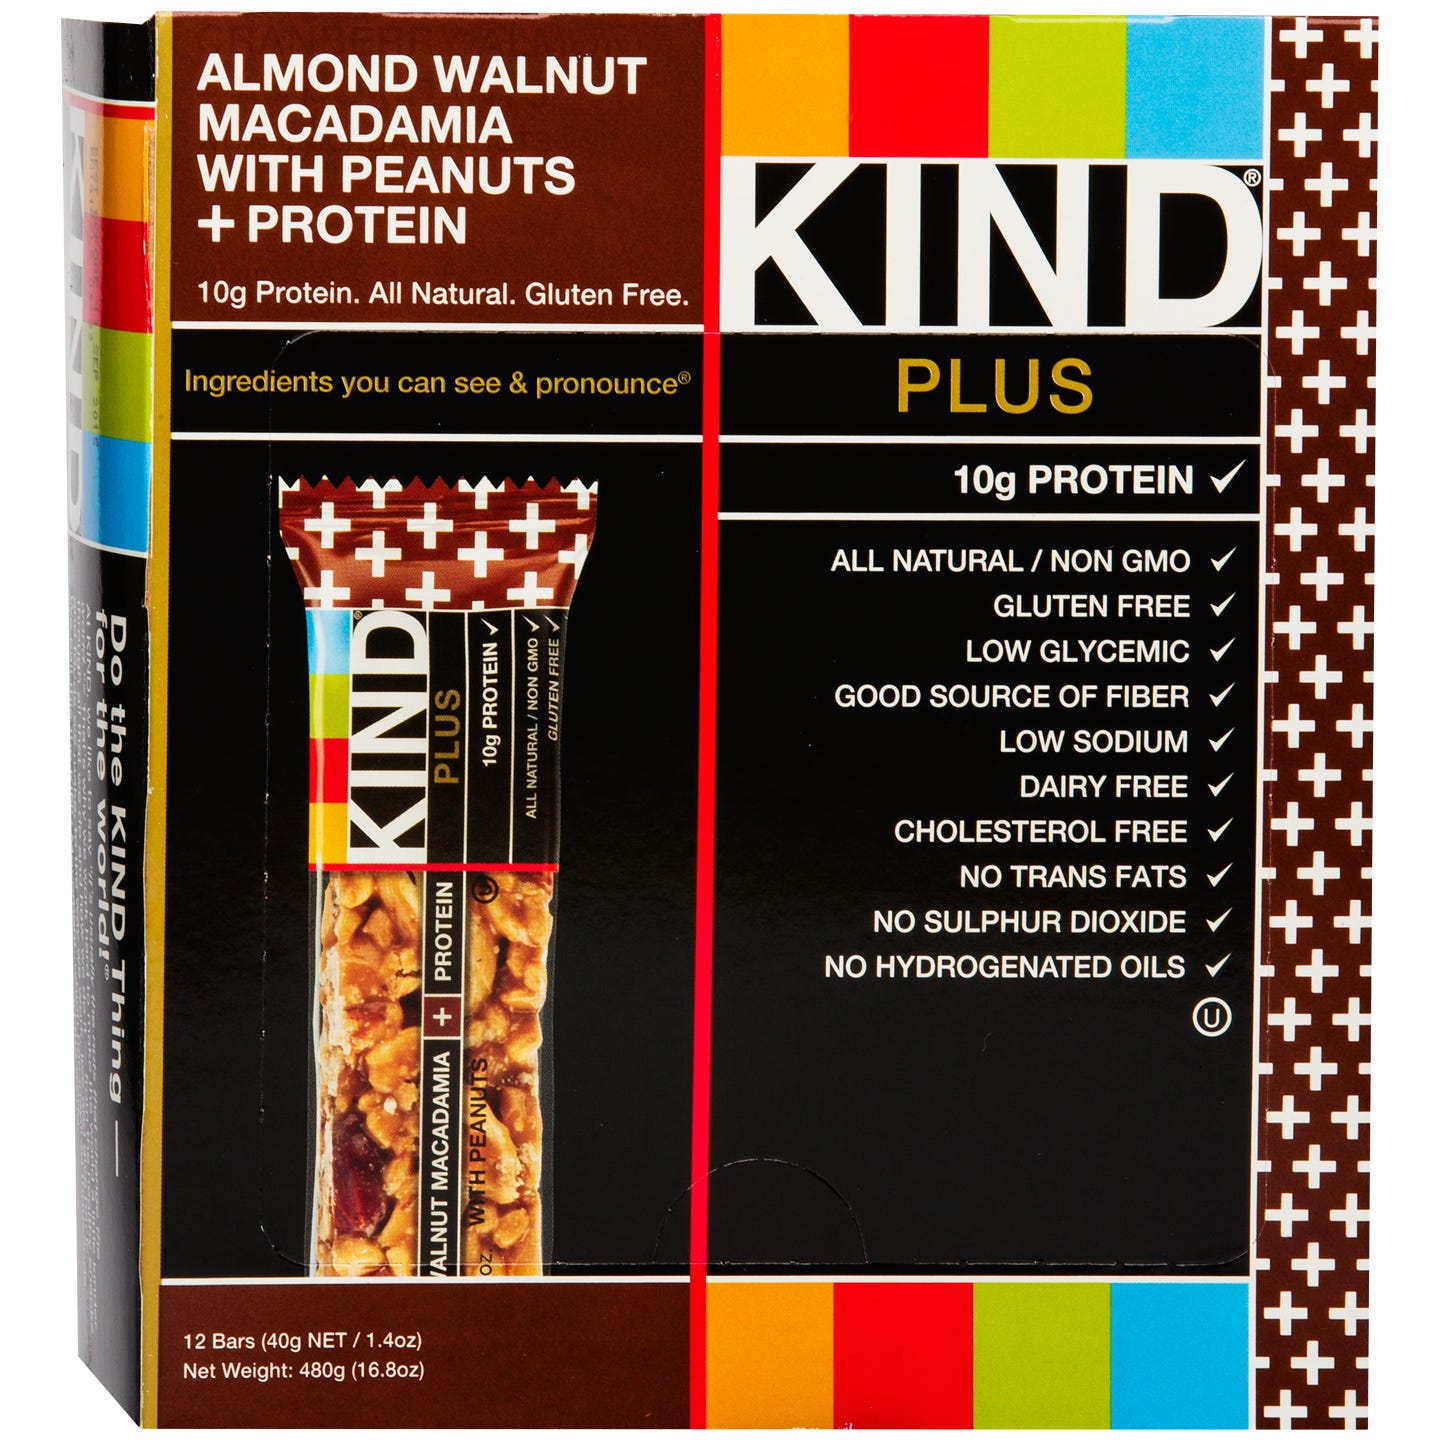 Kind Plus Protein Bars Almond Walnut Macadamia With Peanuts (12 ct) - Rapid Diet Weight Loss Products Shop